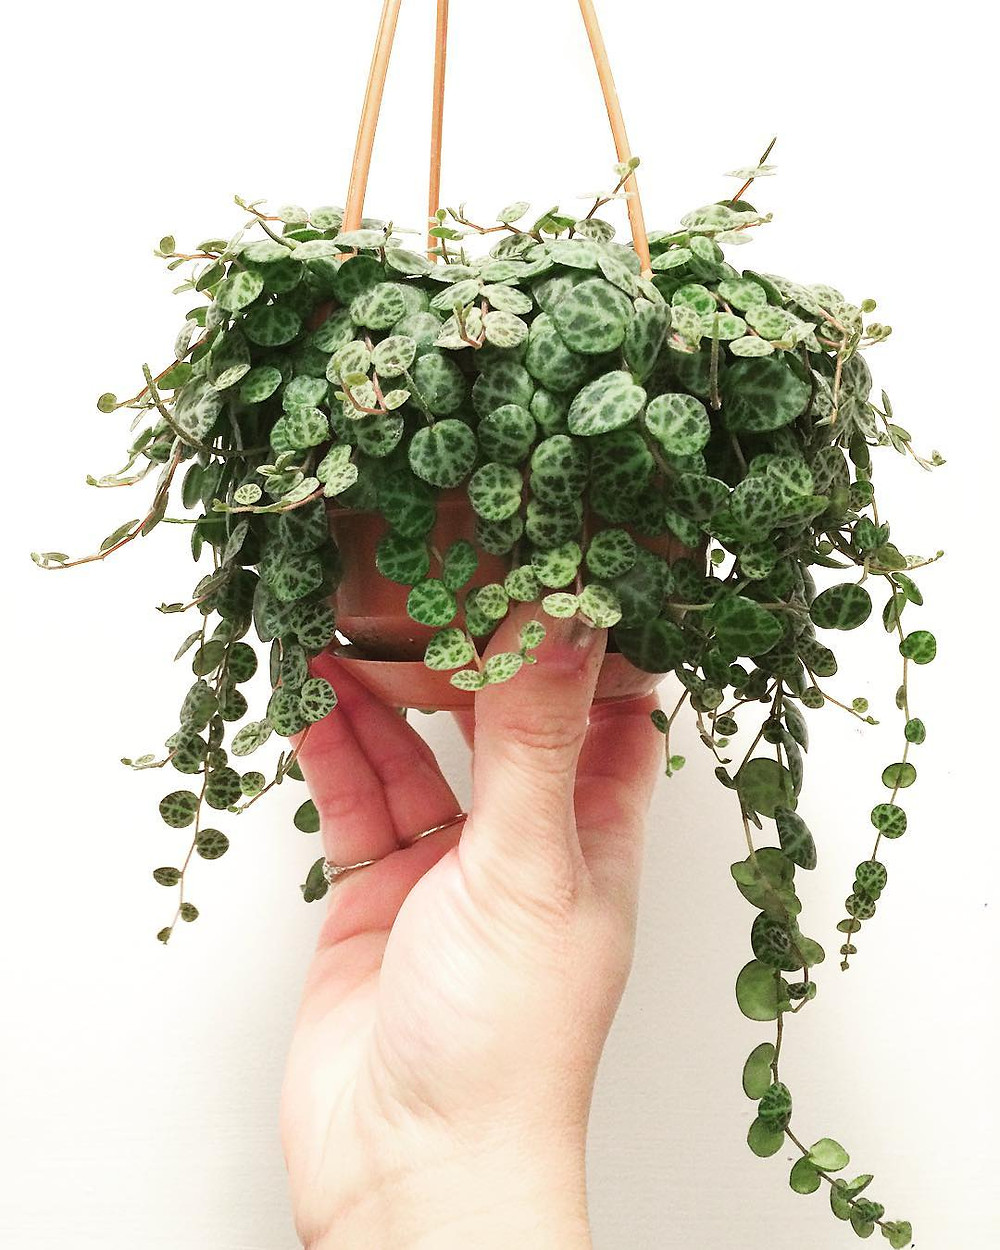 Peperomia prostrata hanging houseplants trailing plants